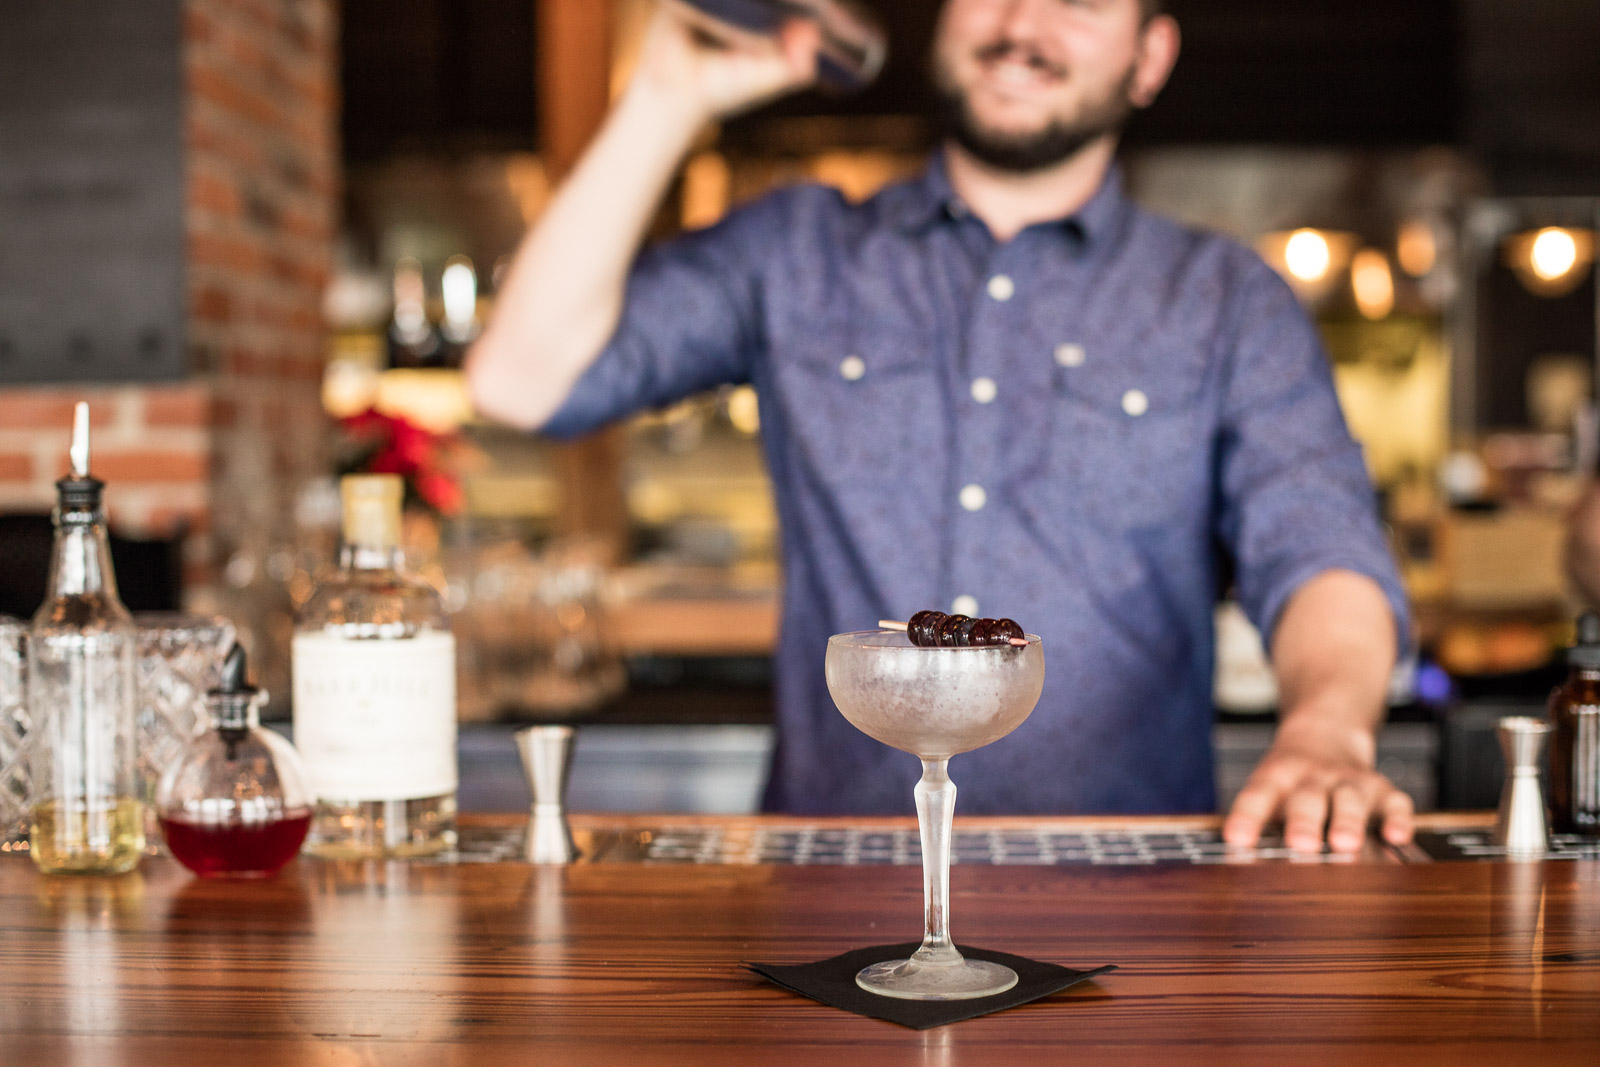 Caledonia Spirits cocktails and ingredients on the bar as a bartender makes drinks at Waterworks in Winooski, Vermont. by Reciprocity Studio for Caledonia Spirits.